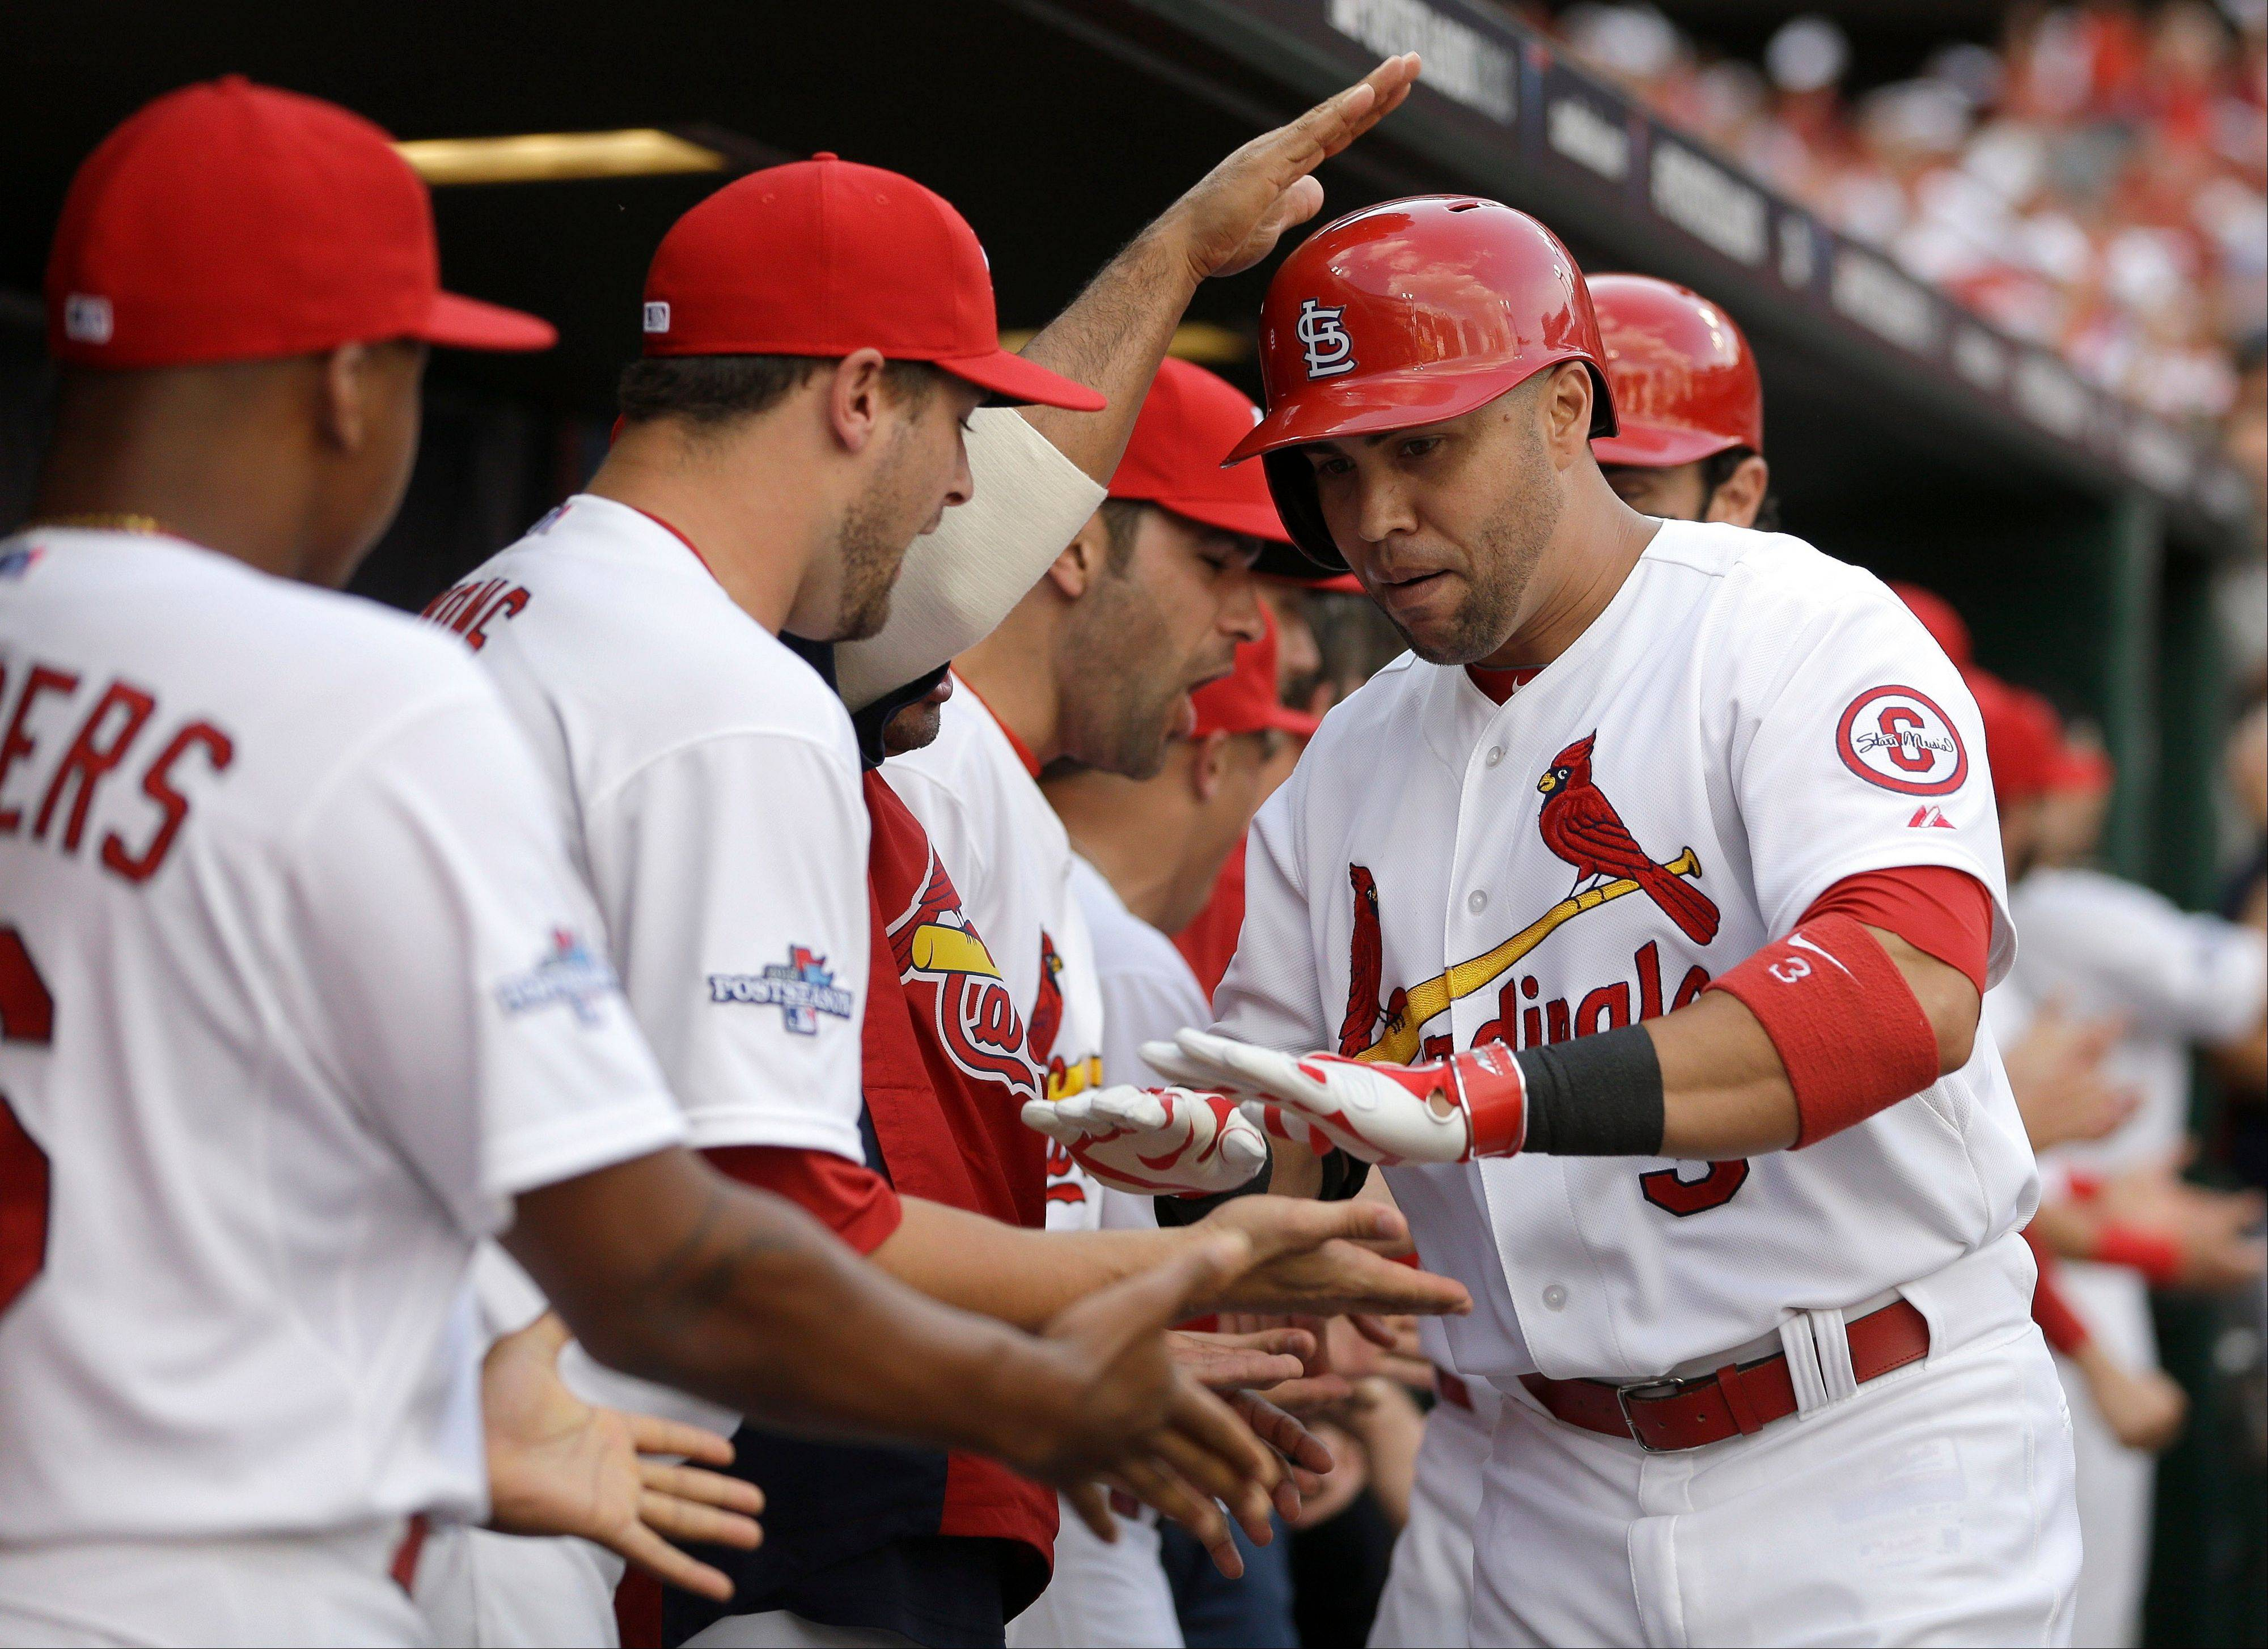 St. Louis Cardinals' Carlos Beltran, right, is congratulated in the dugout by teammates after hitting a three-run home run against the Pittsburgh Pirates in the third inning of Game 1 of baseball's National League division series on Thursday, Oct. 3, 2013, in St. Louis.